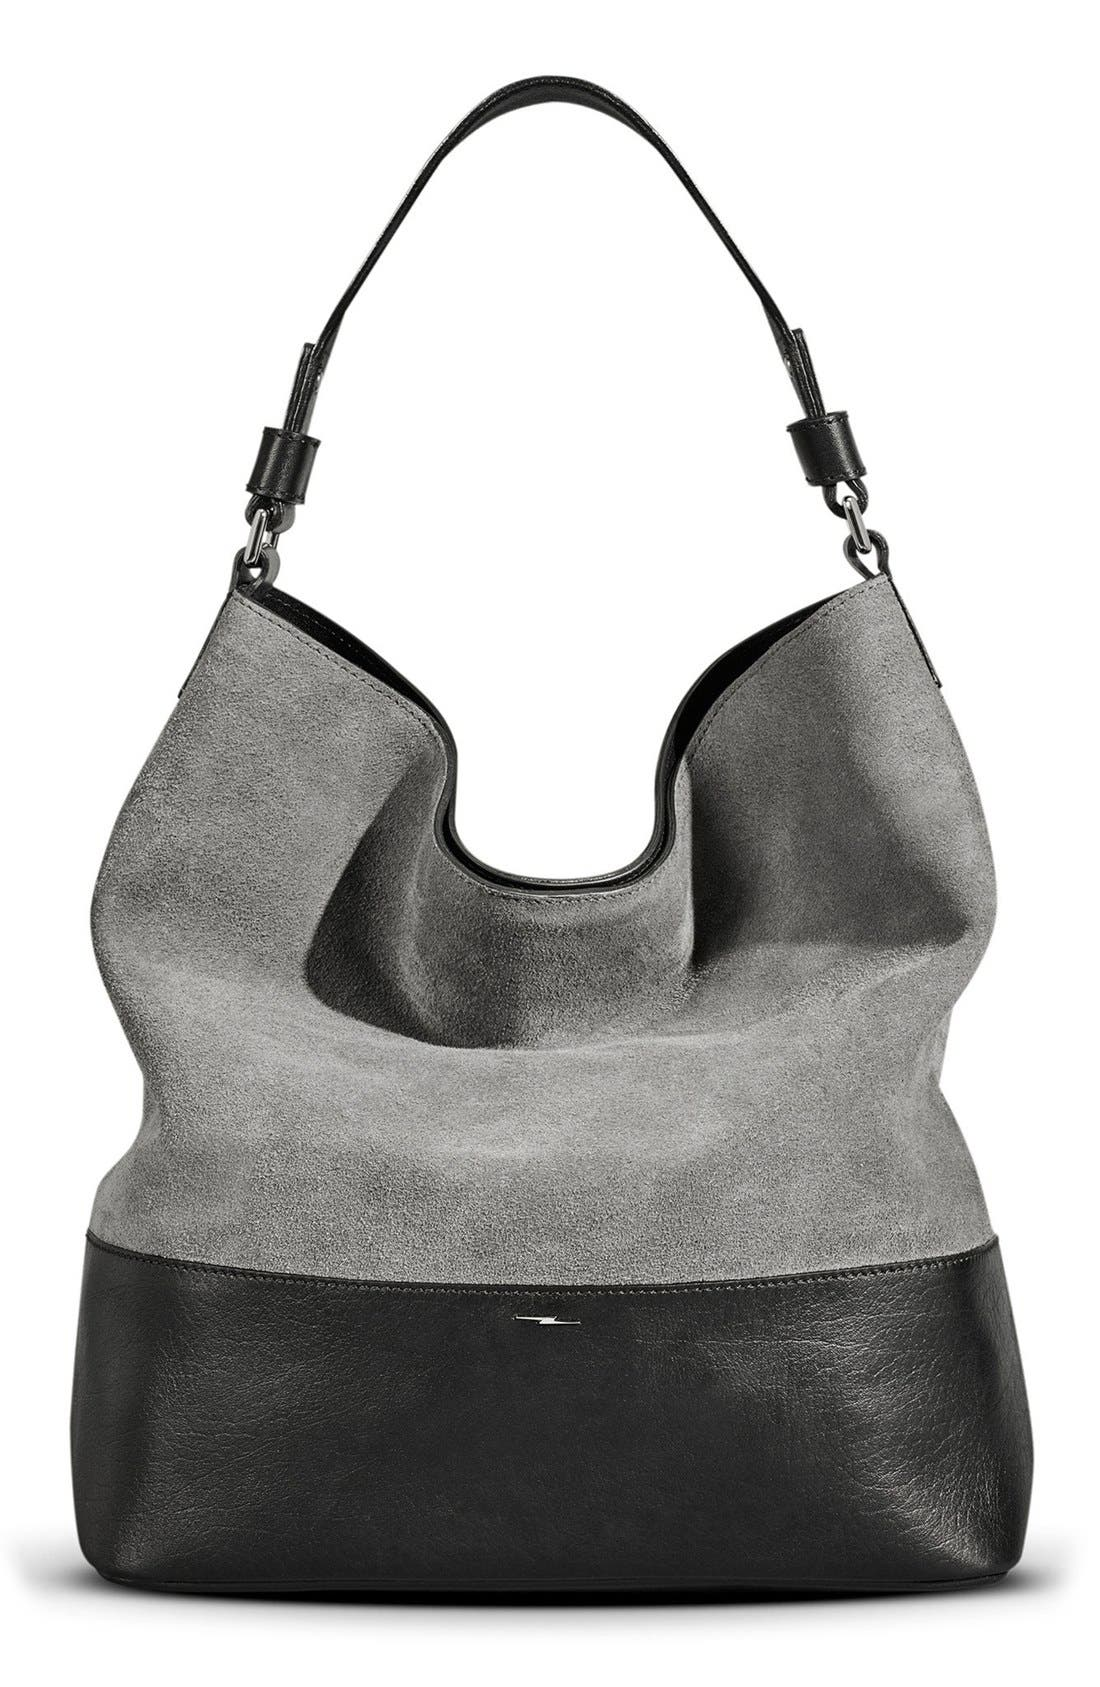 Shinola Relaxed Leather & Suede Hobo Bag